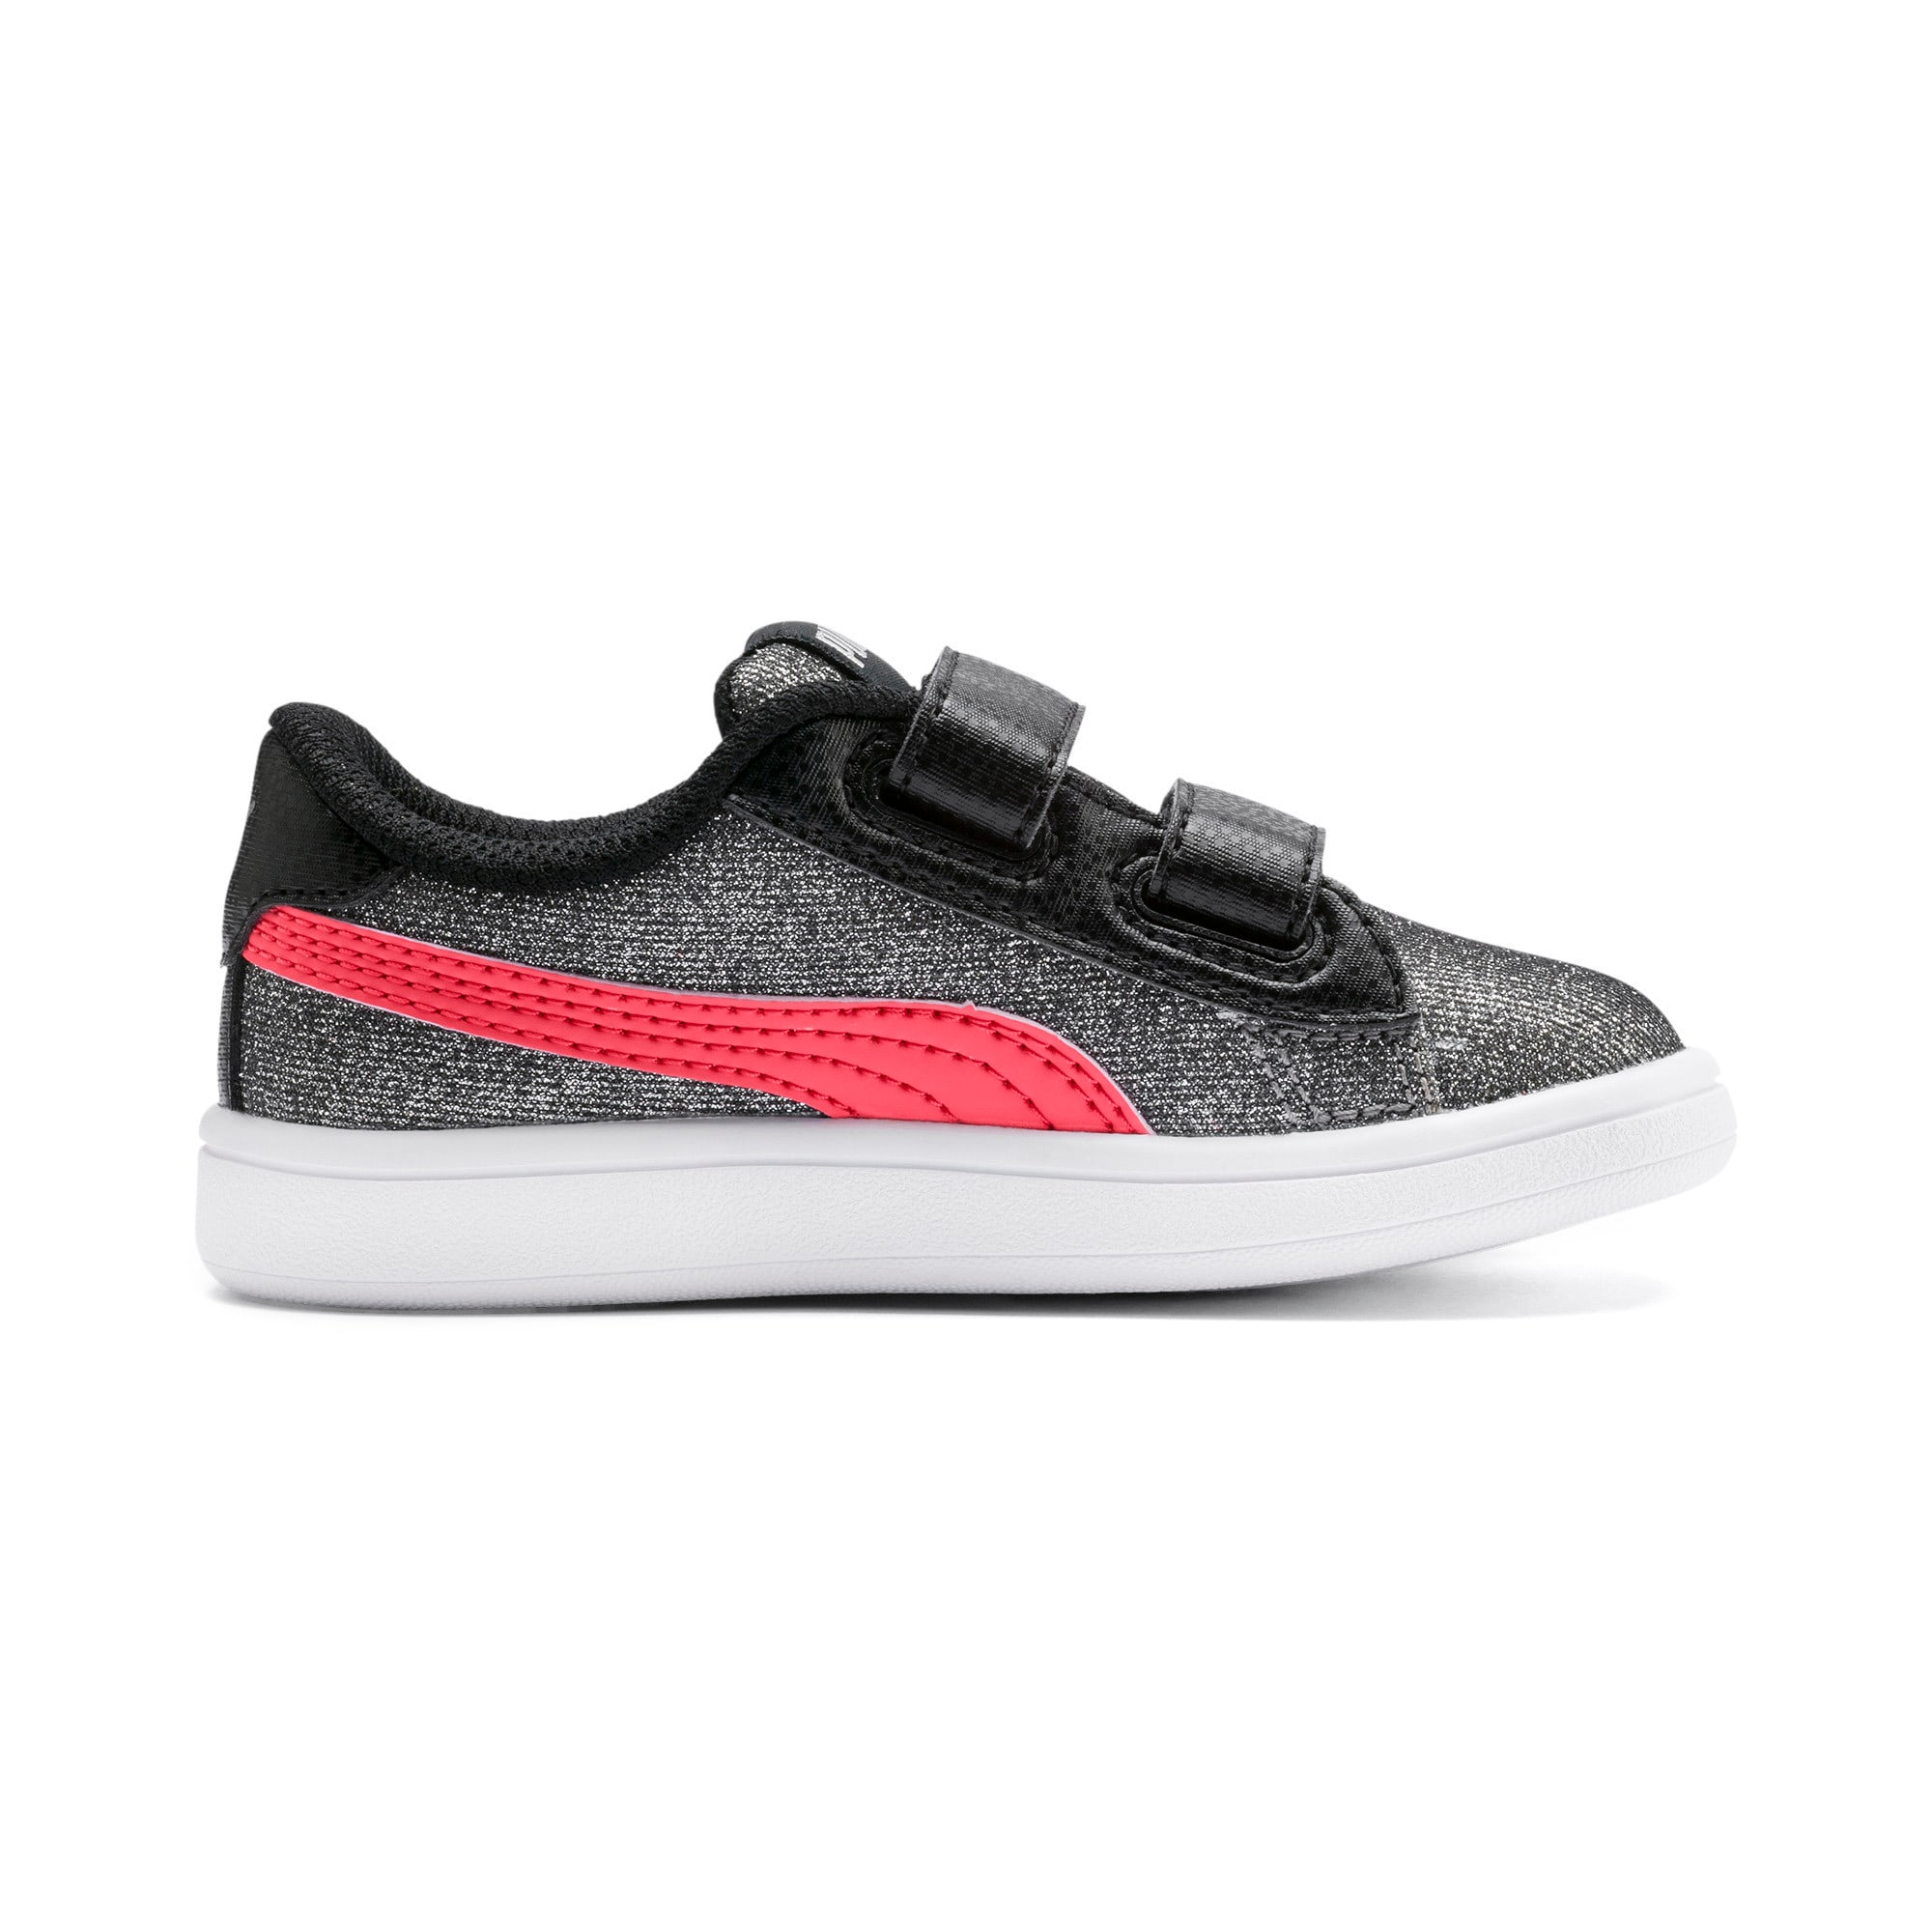 Thumbnail 5 of PUMA Smash v2 Glitz Glam Baby Girls' Trainers, Puma Black-Calypso Coral, medium